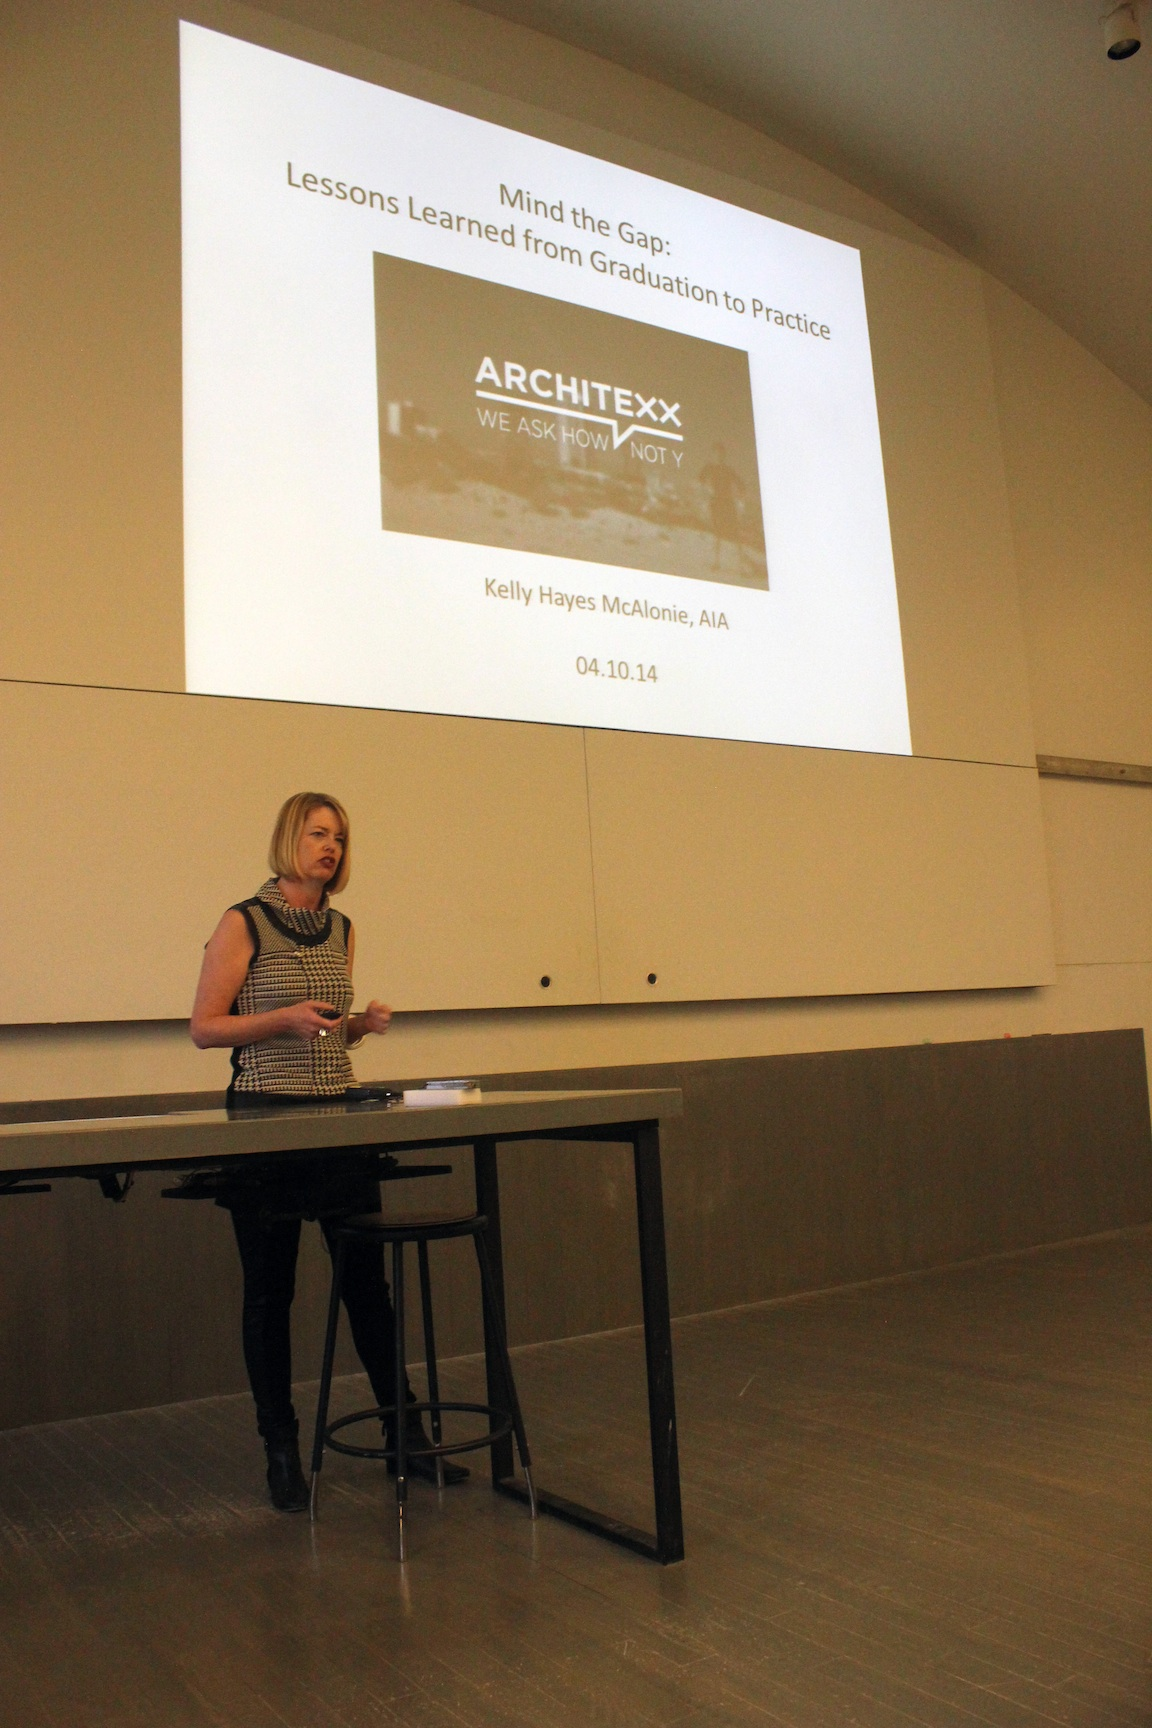 Kelly Hayes McAlonie begins the lecture with her advice for the intern architect.